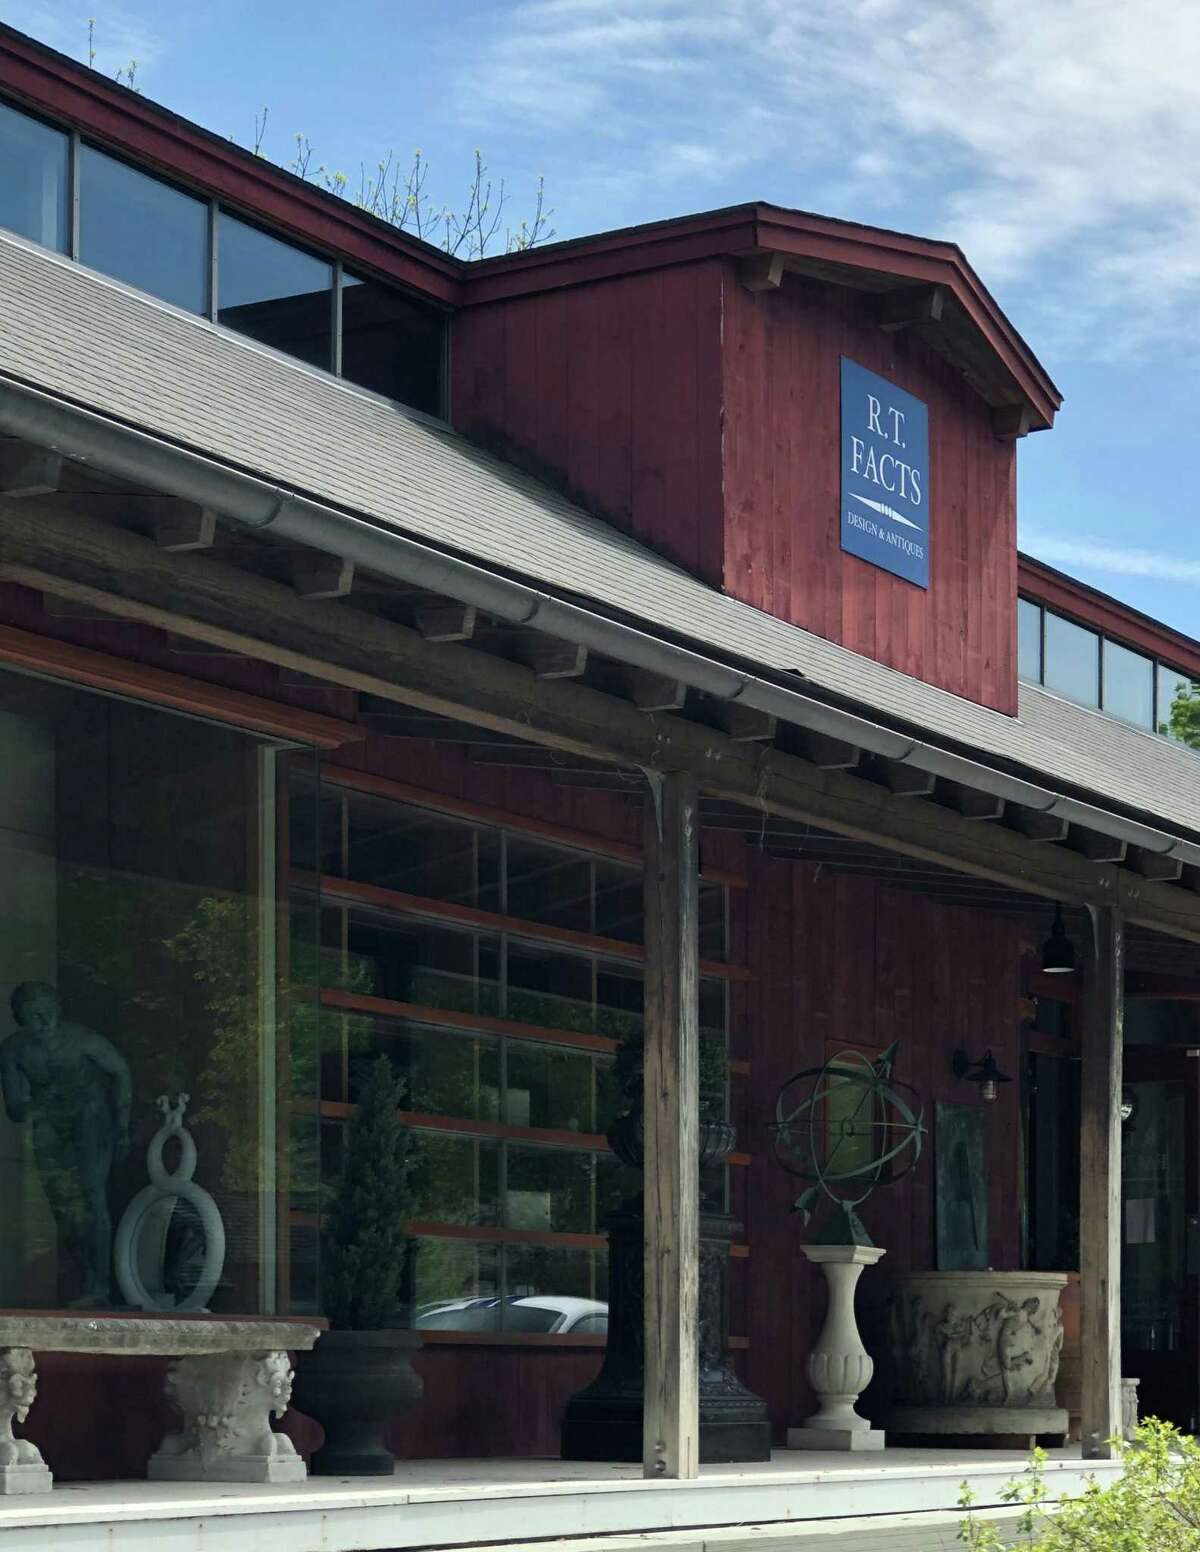 Spectrum/The state began Phase 1 of reopening businesses May 20, 2020. Several art galleries and businesses at the Kent Barns complex in Kent are among those who have announced their openings and latest offerings. RT Facts is among those businesses.